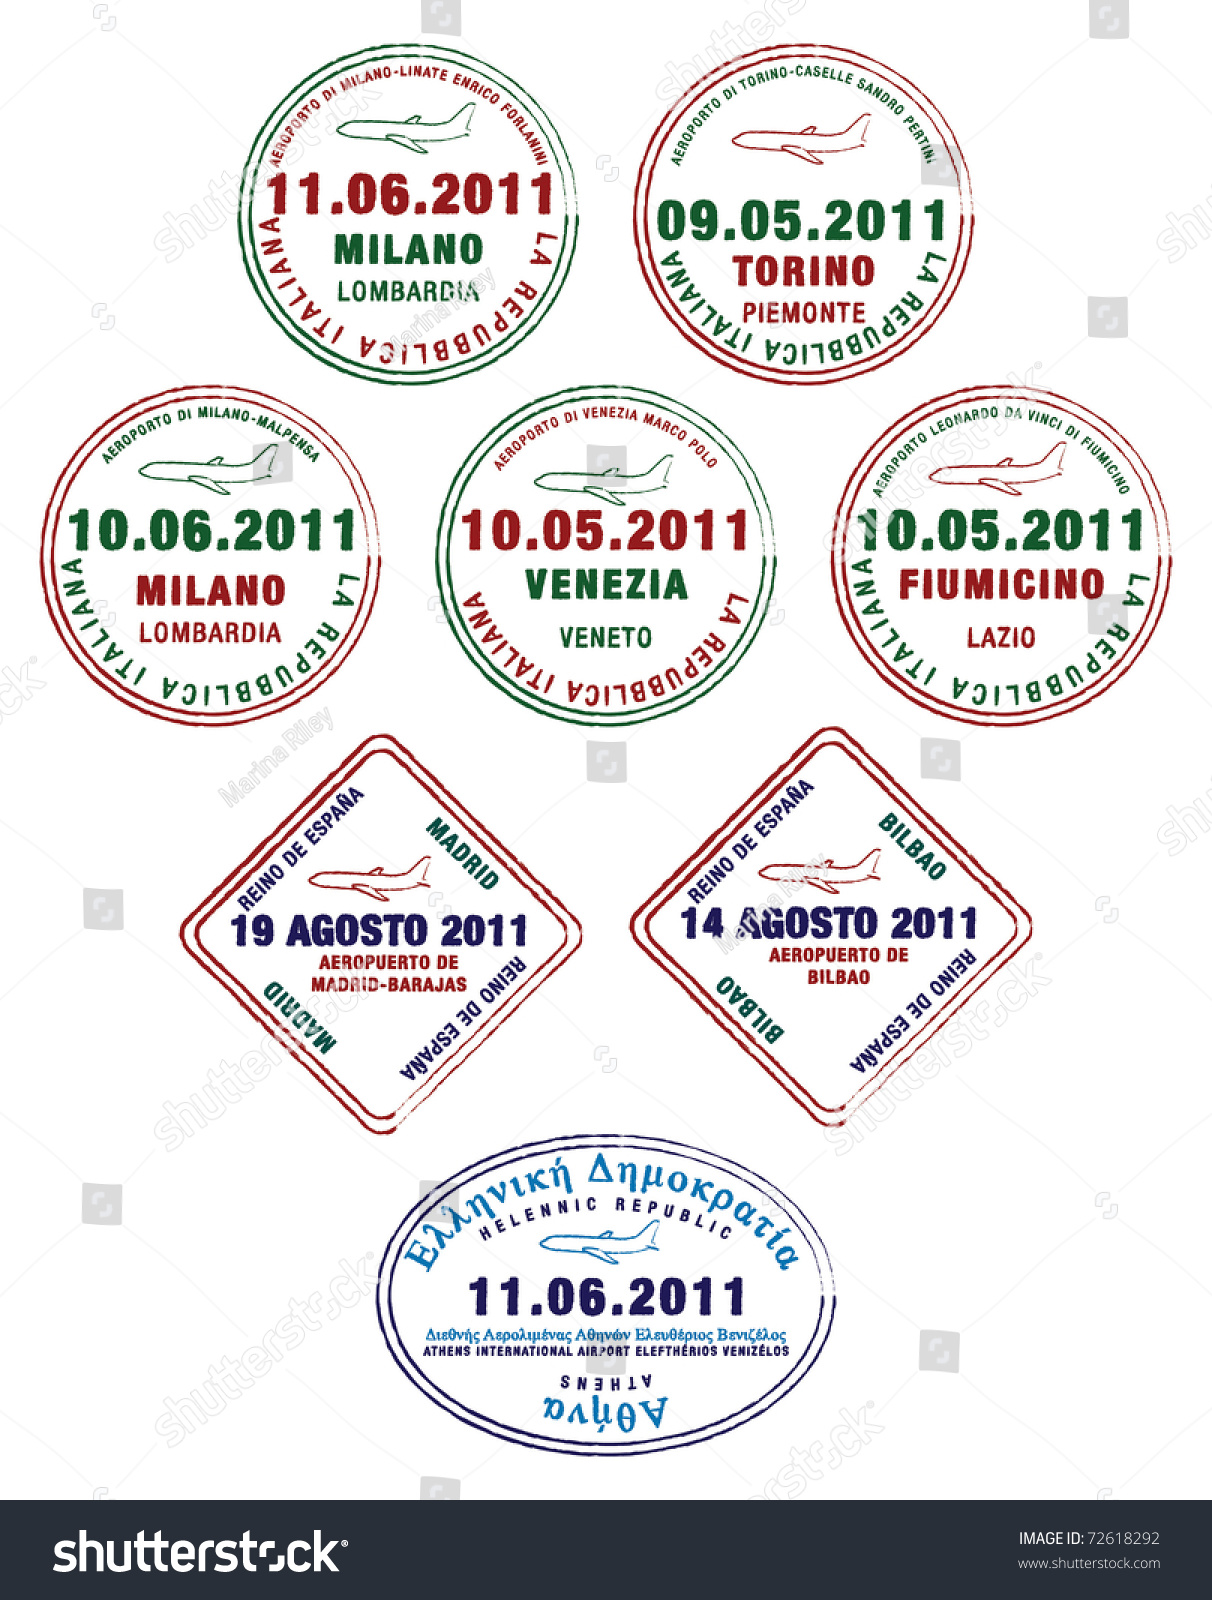 Passport stamps france italy greece vector stock vector 72618292 passport stamps from france italy and greece in vector format ccuart Choice Image